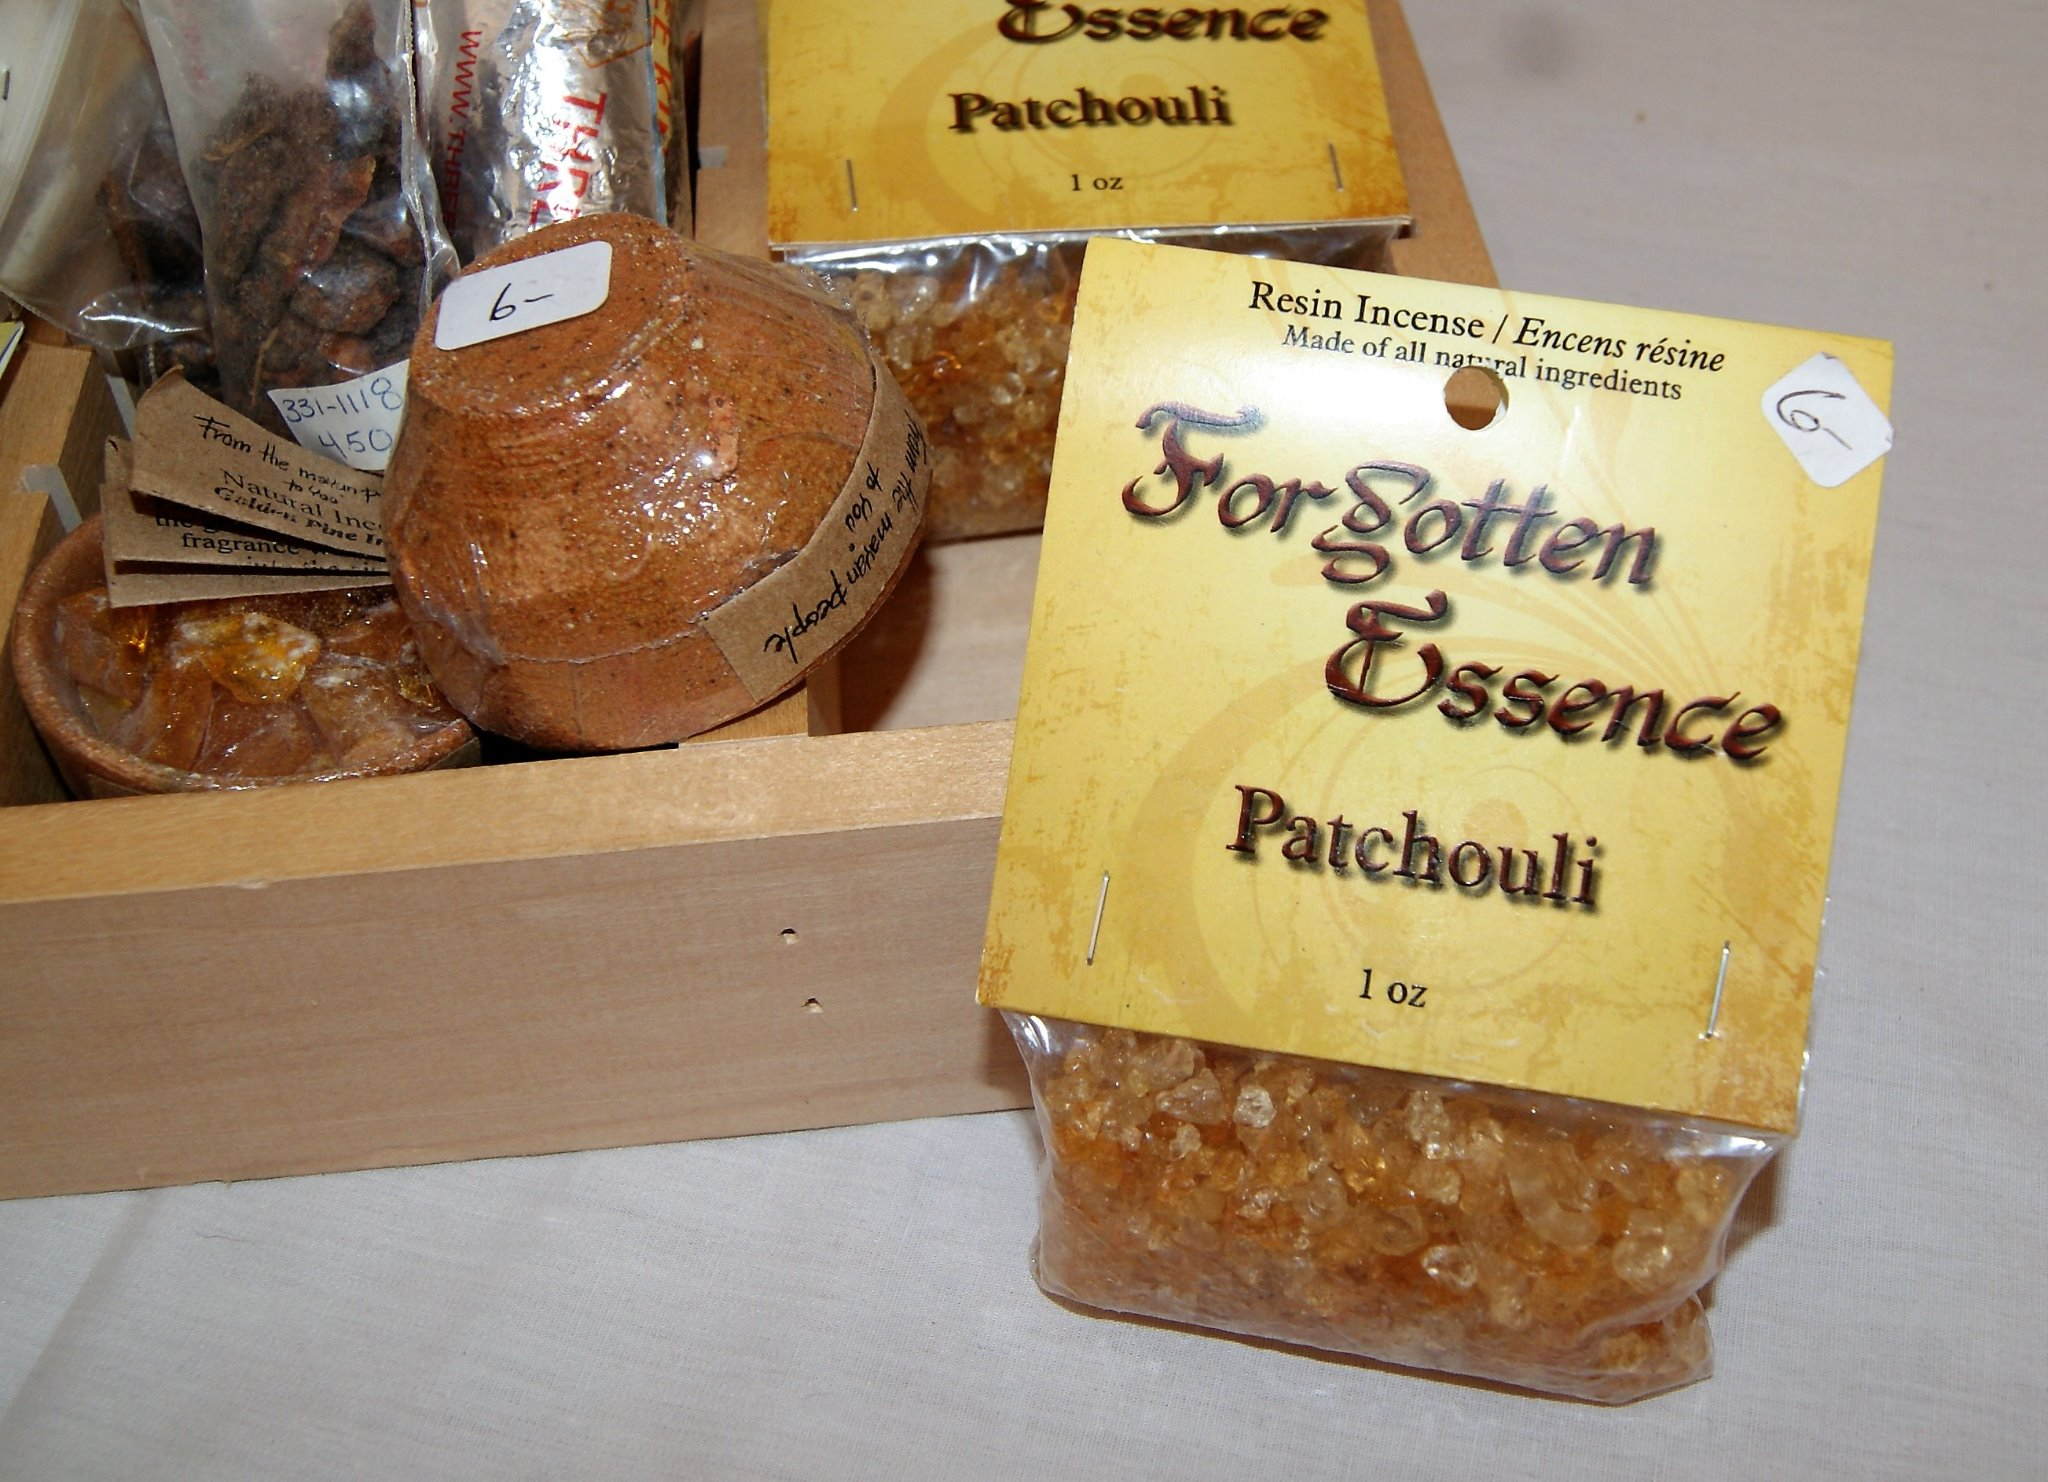 Resin Incense Patchouli